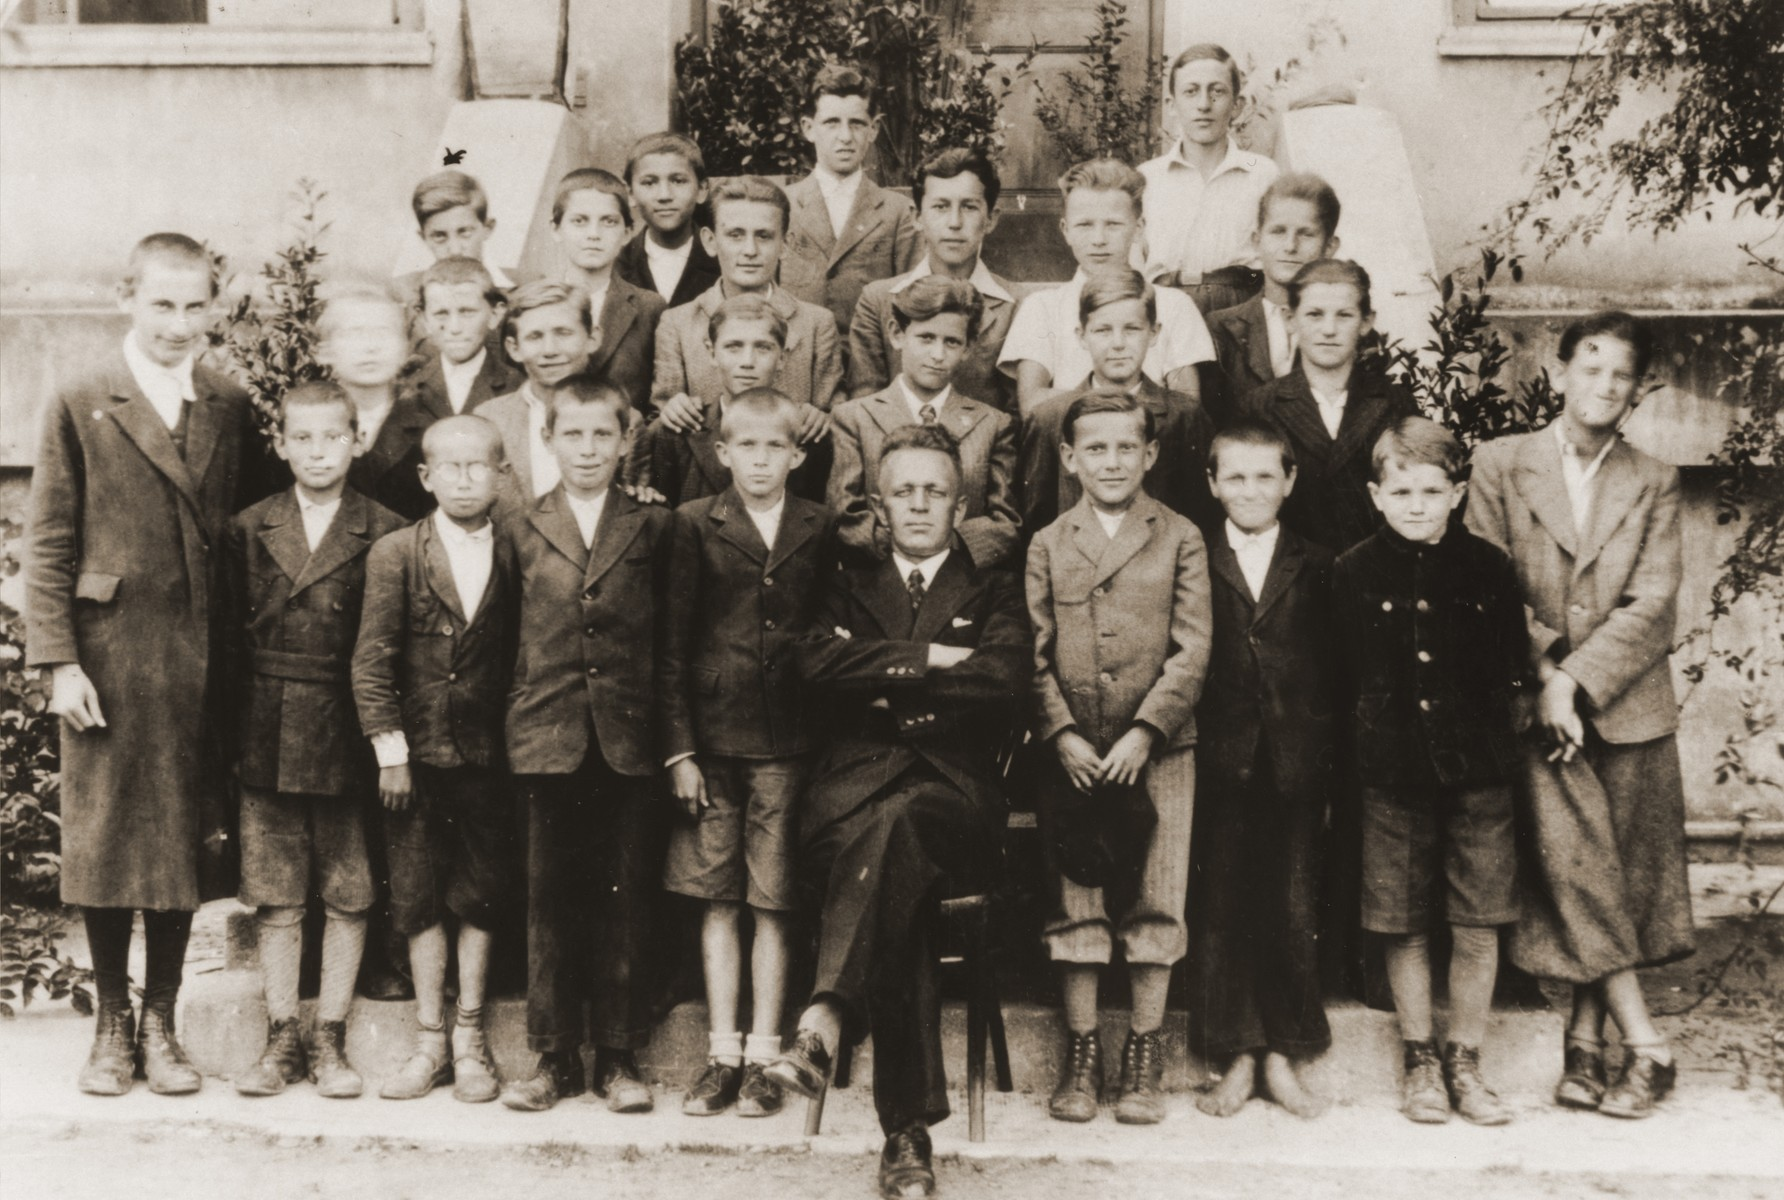 Group portrait of students and teachers at a school in Oswiecim, Poland.  Among those pictured is Szmuel Aron Silbiger.